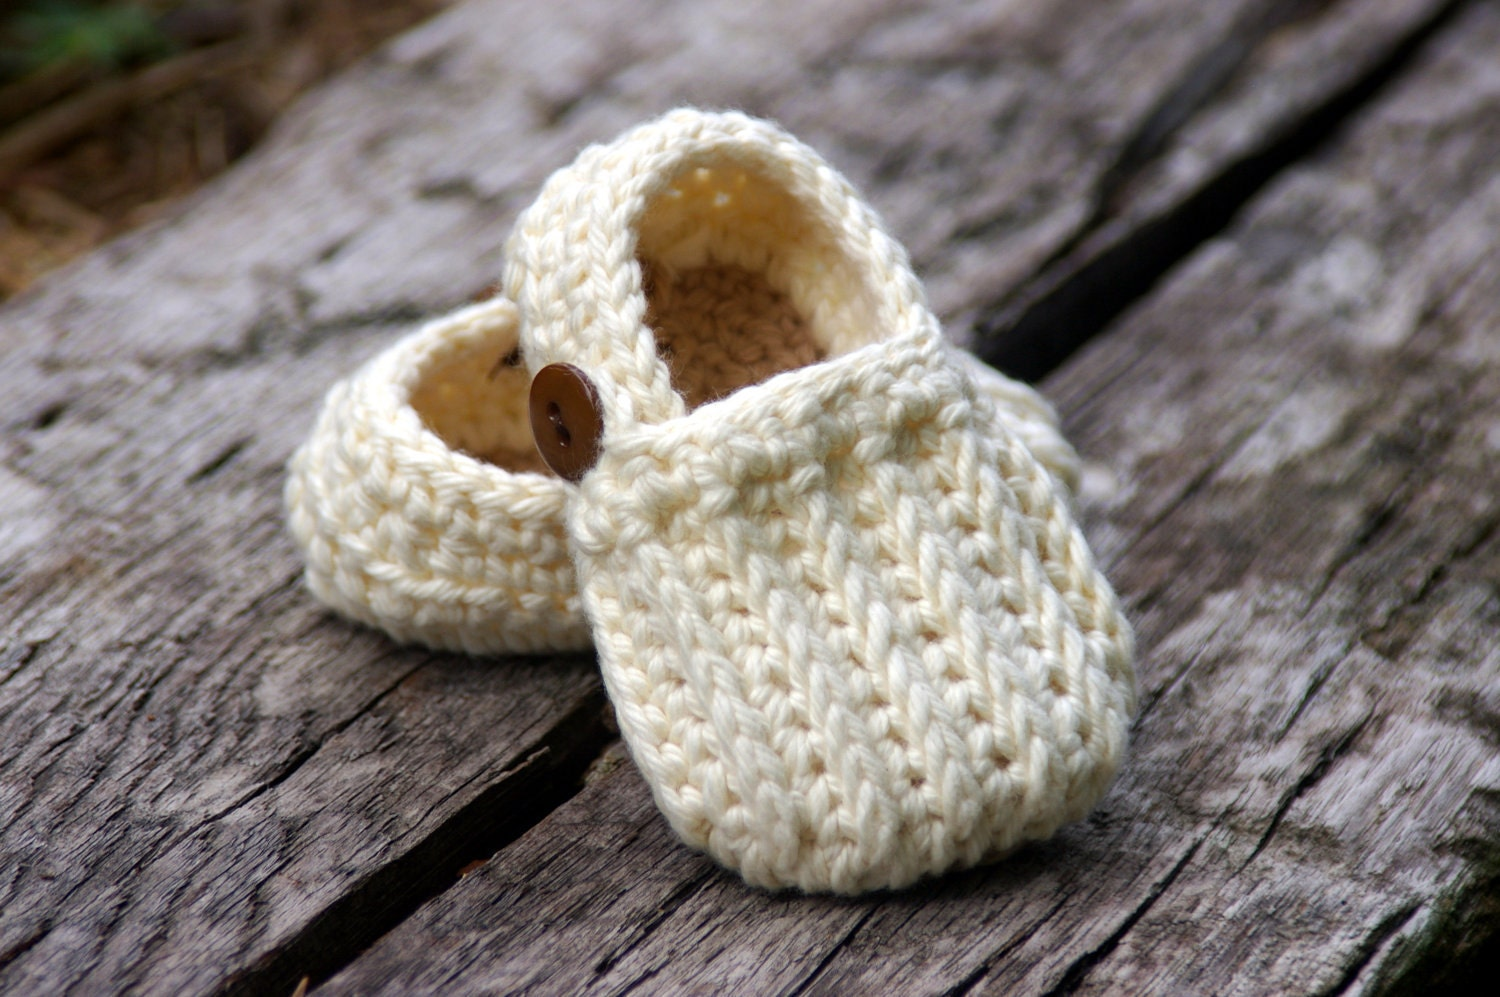 Crochet Baby Booties Pattern With Pictures : Baby Booties Crochet Pattern Easy On Loafers Knit look